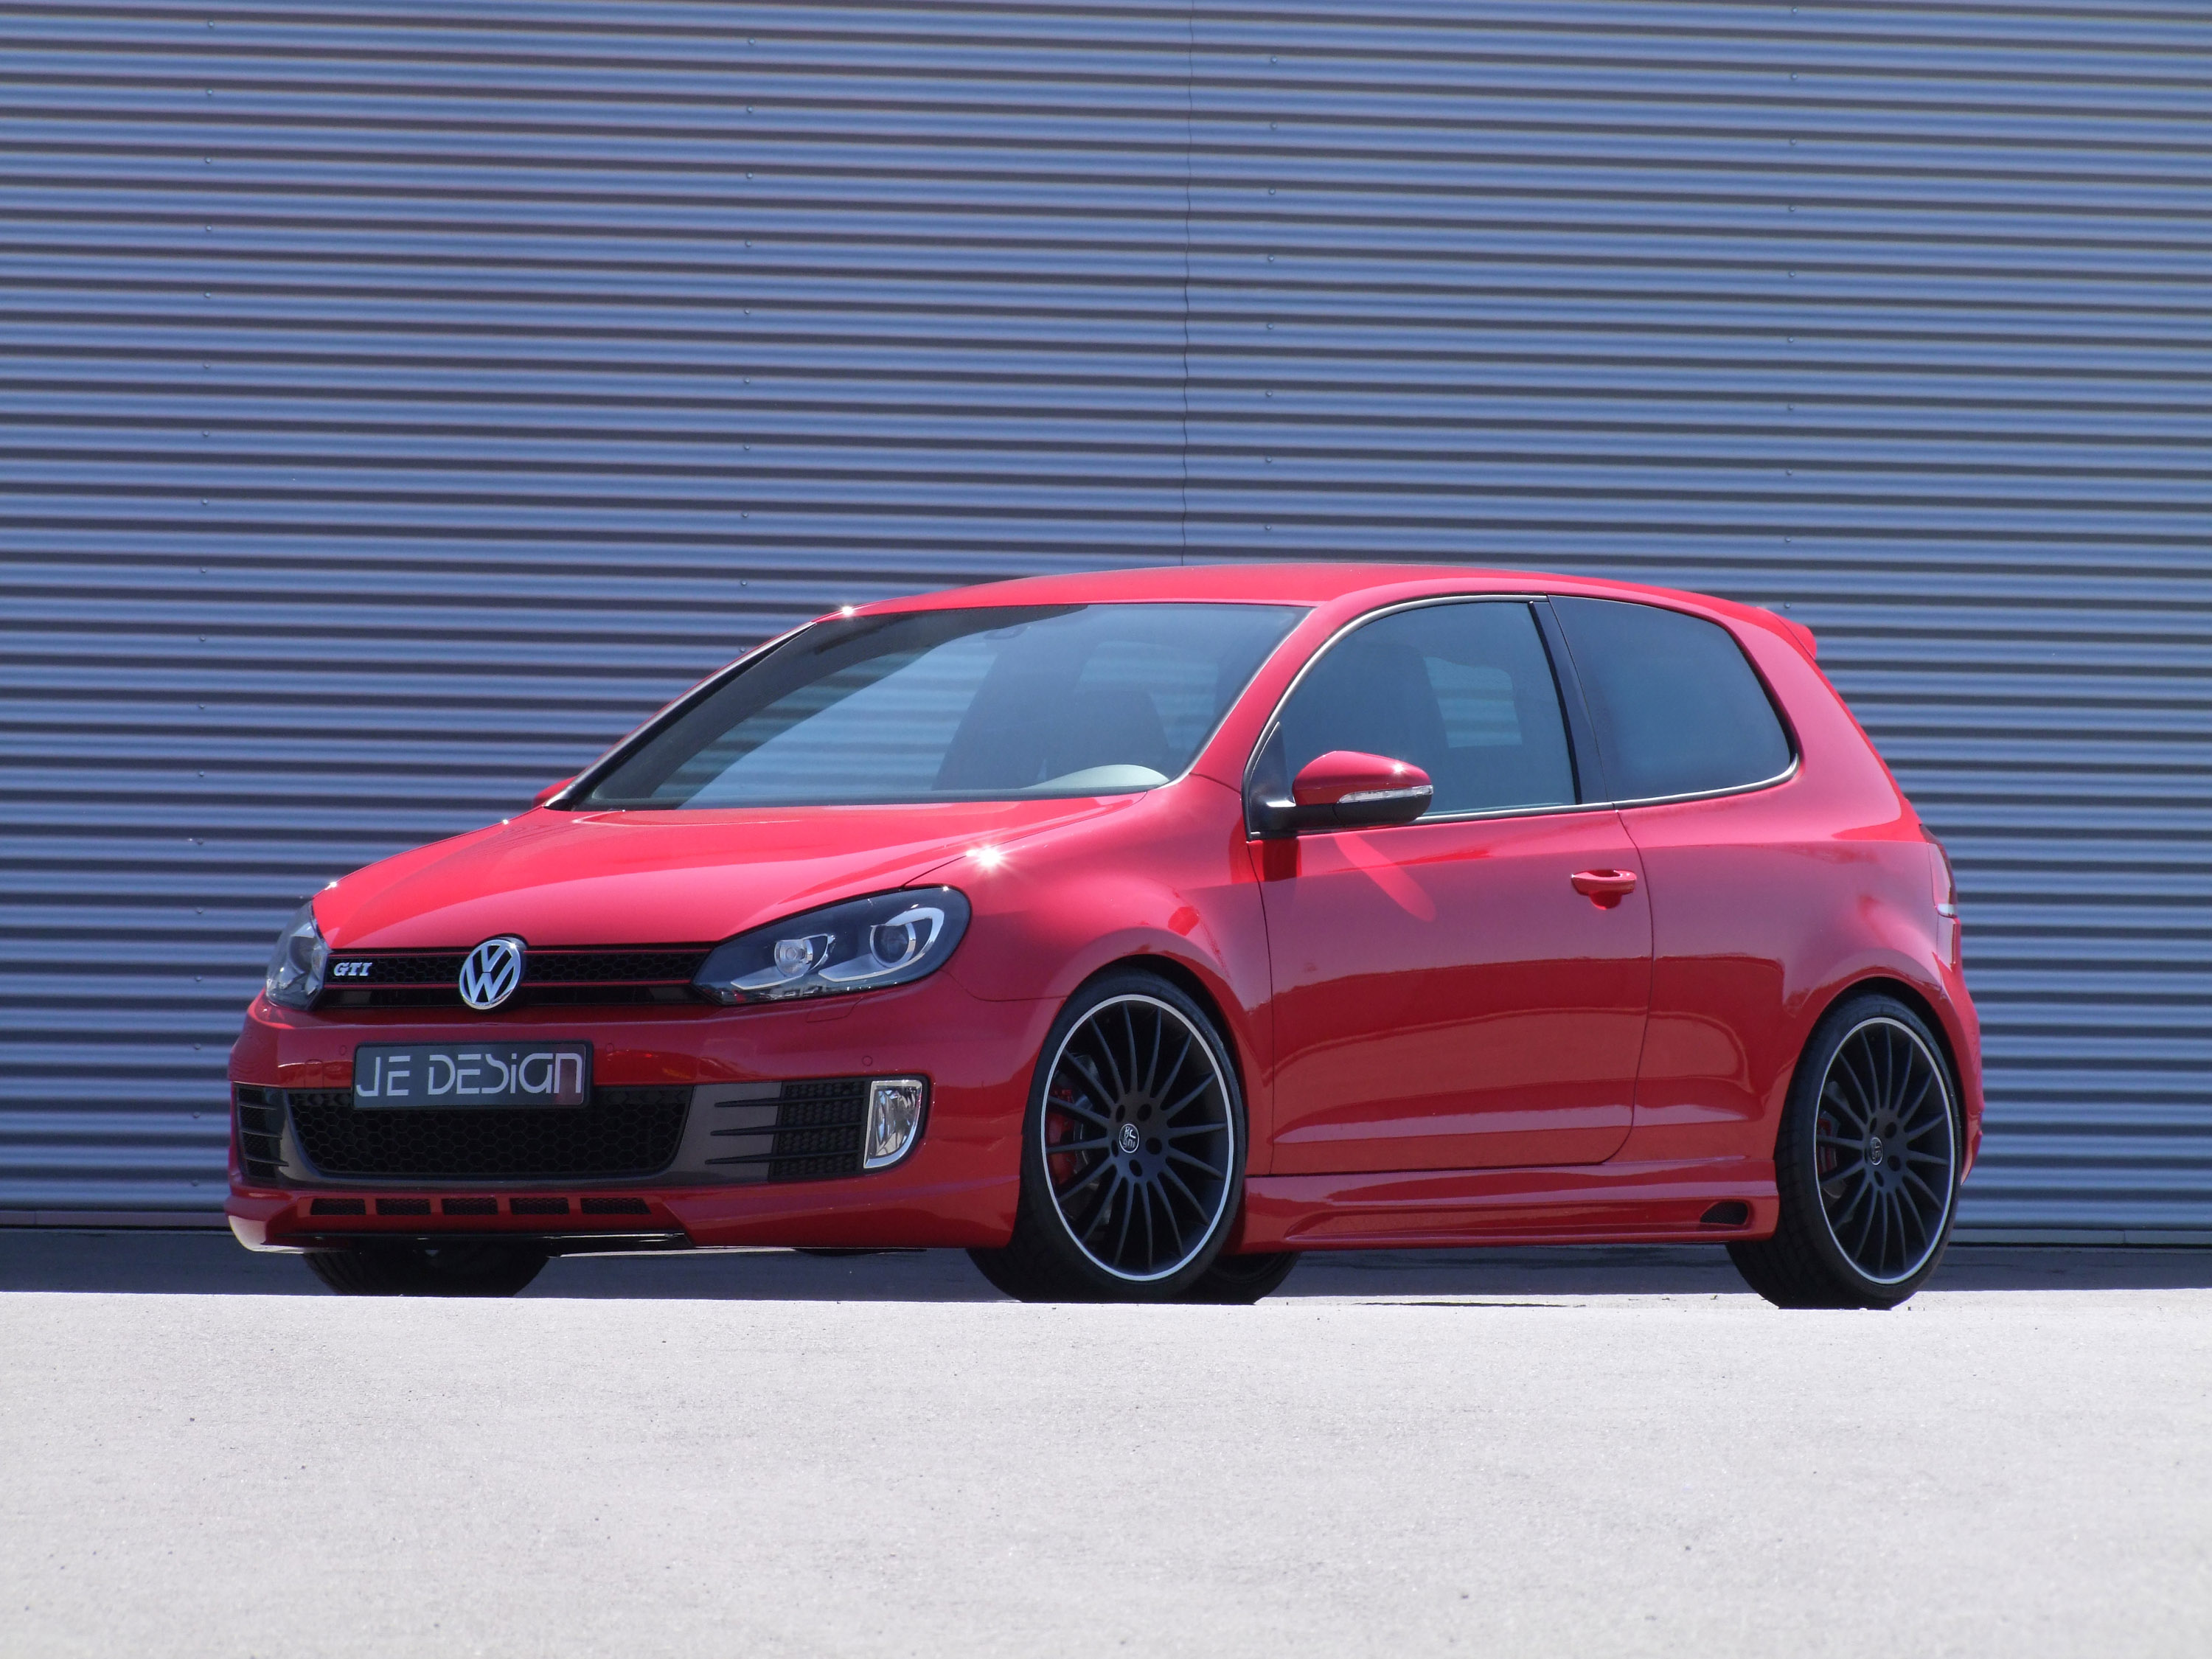 JE DESIGN Boosted VW Golf VI GTI To 270HP